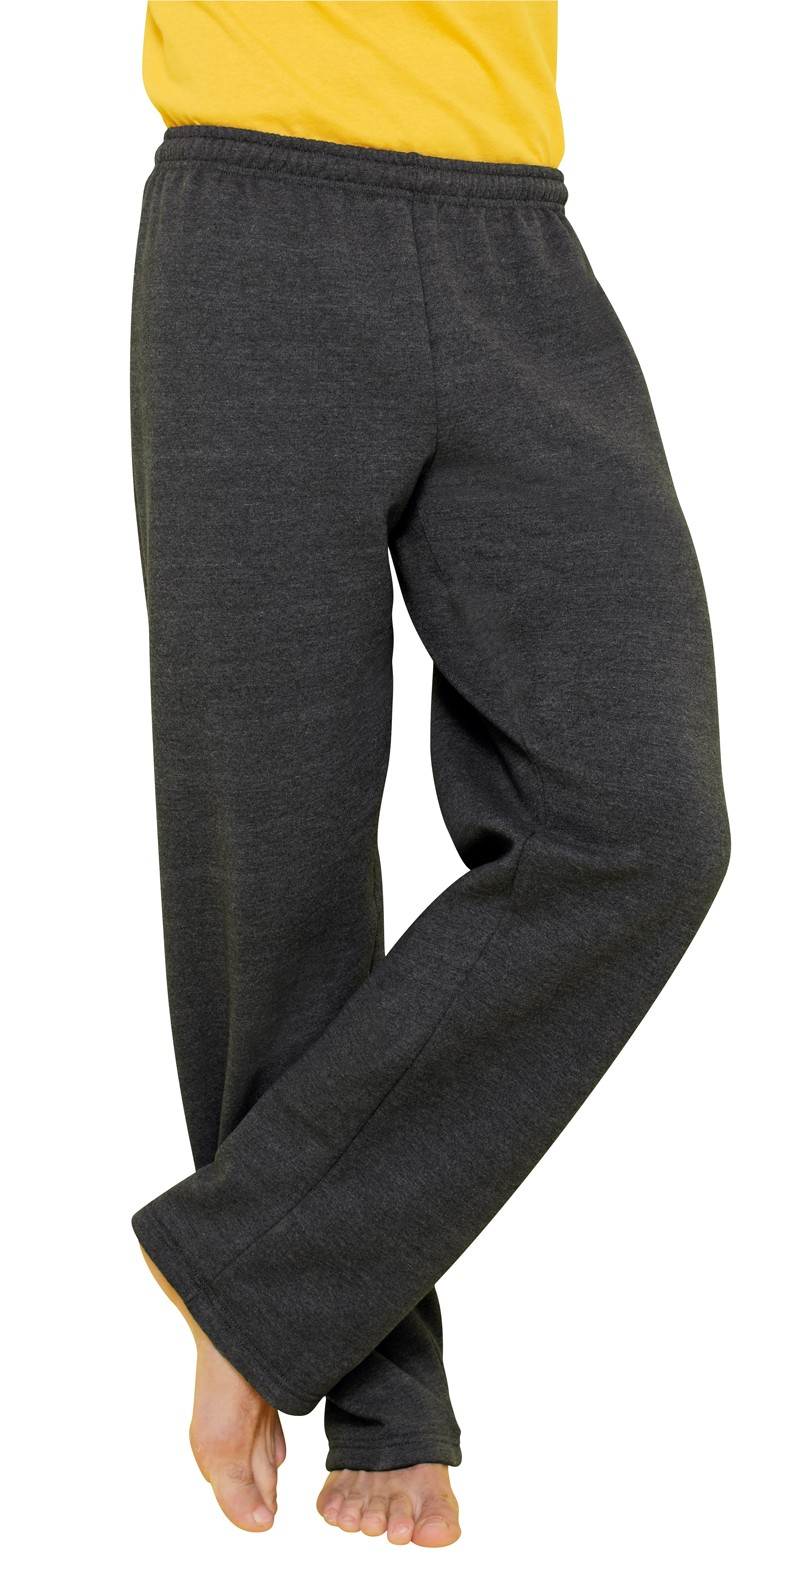 Heavy blend seatpants